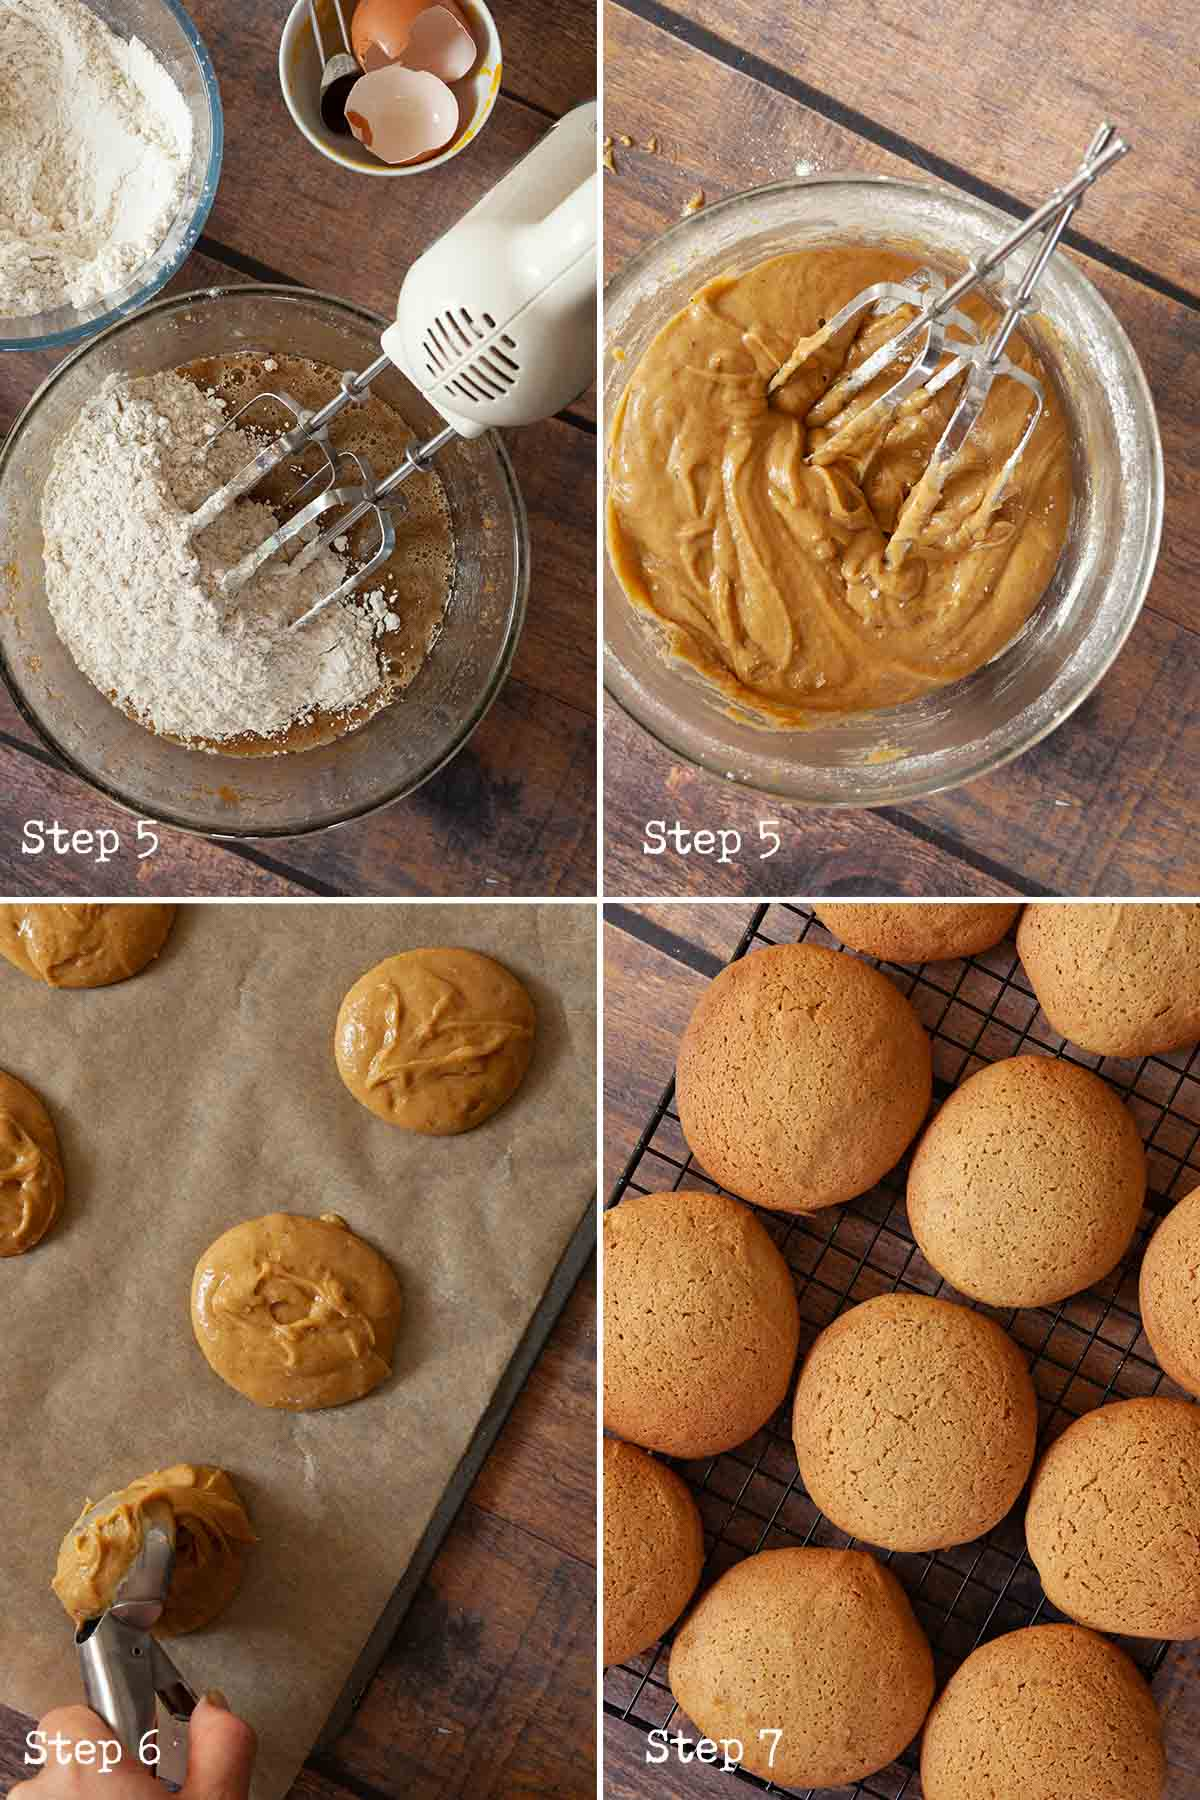 Collage of images showing cake batter being made and baked